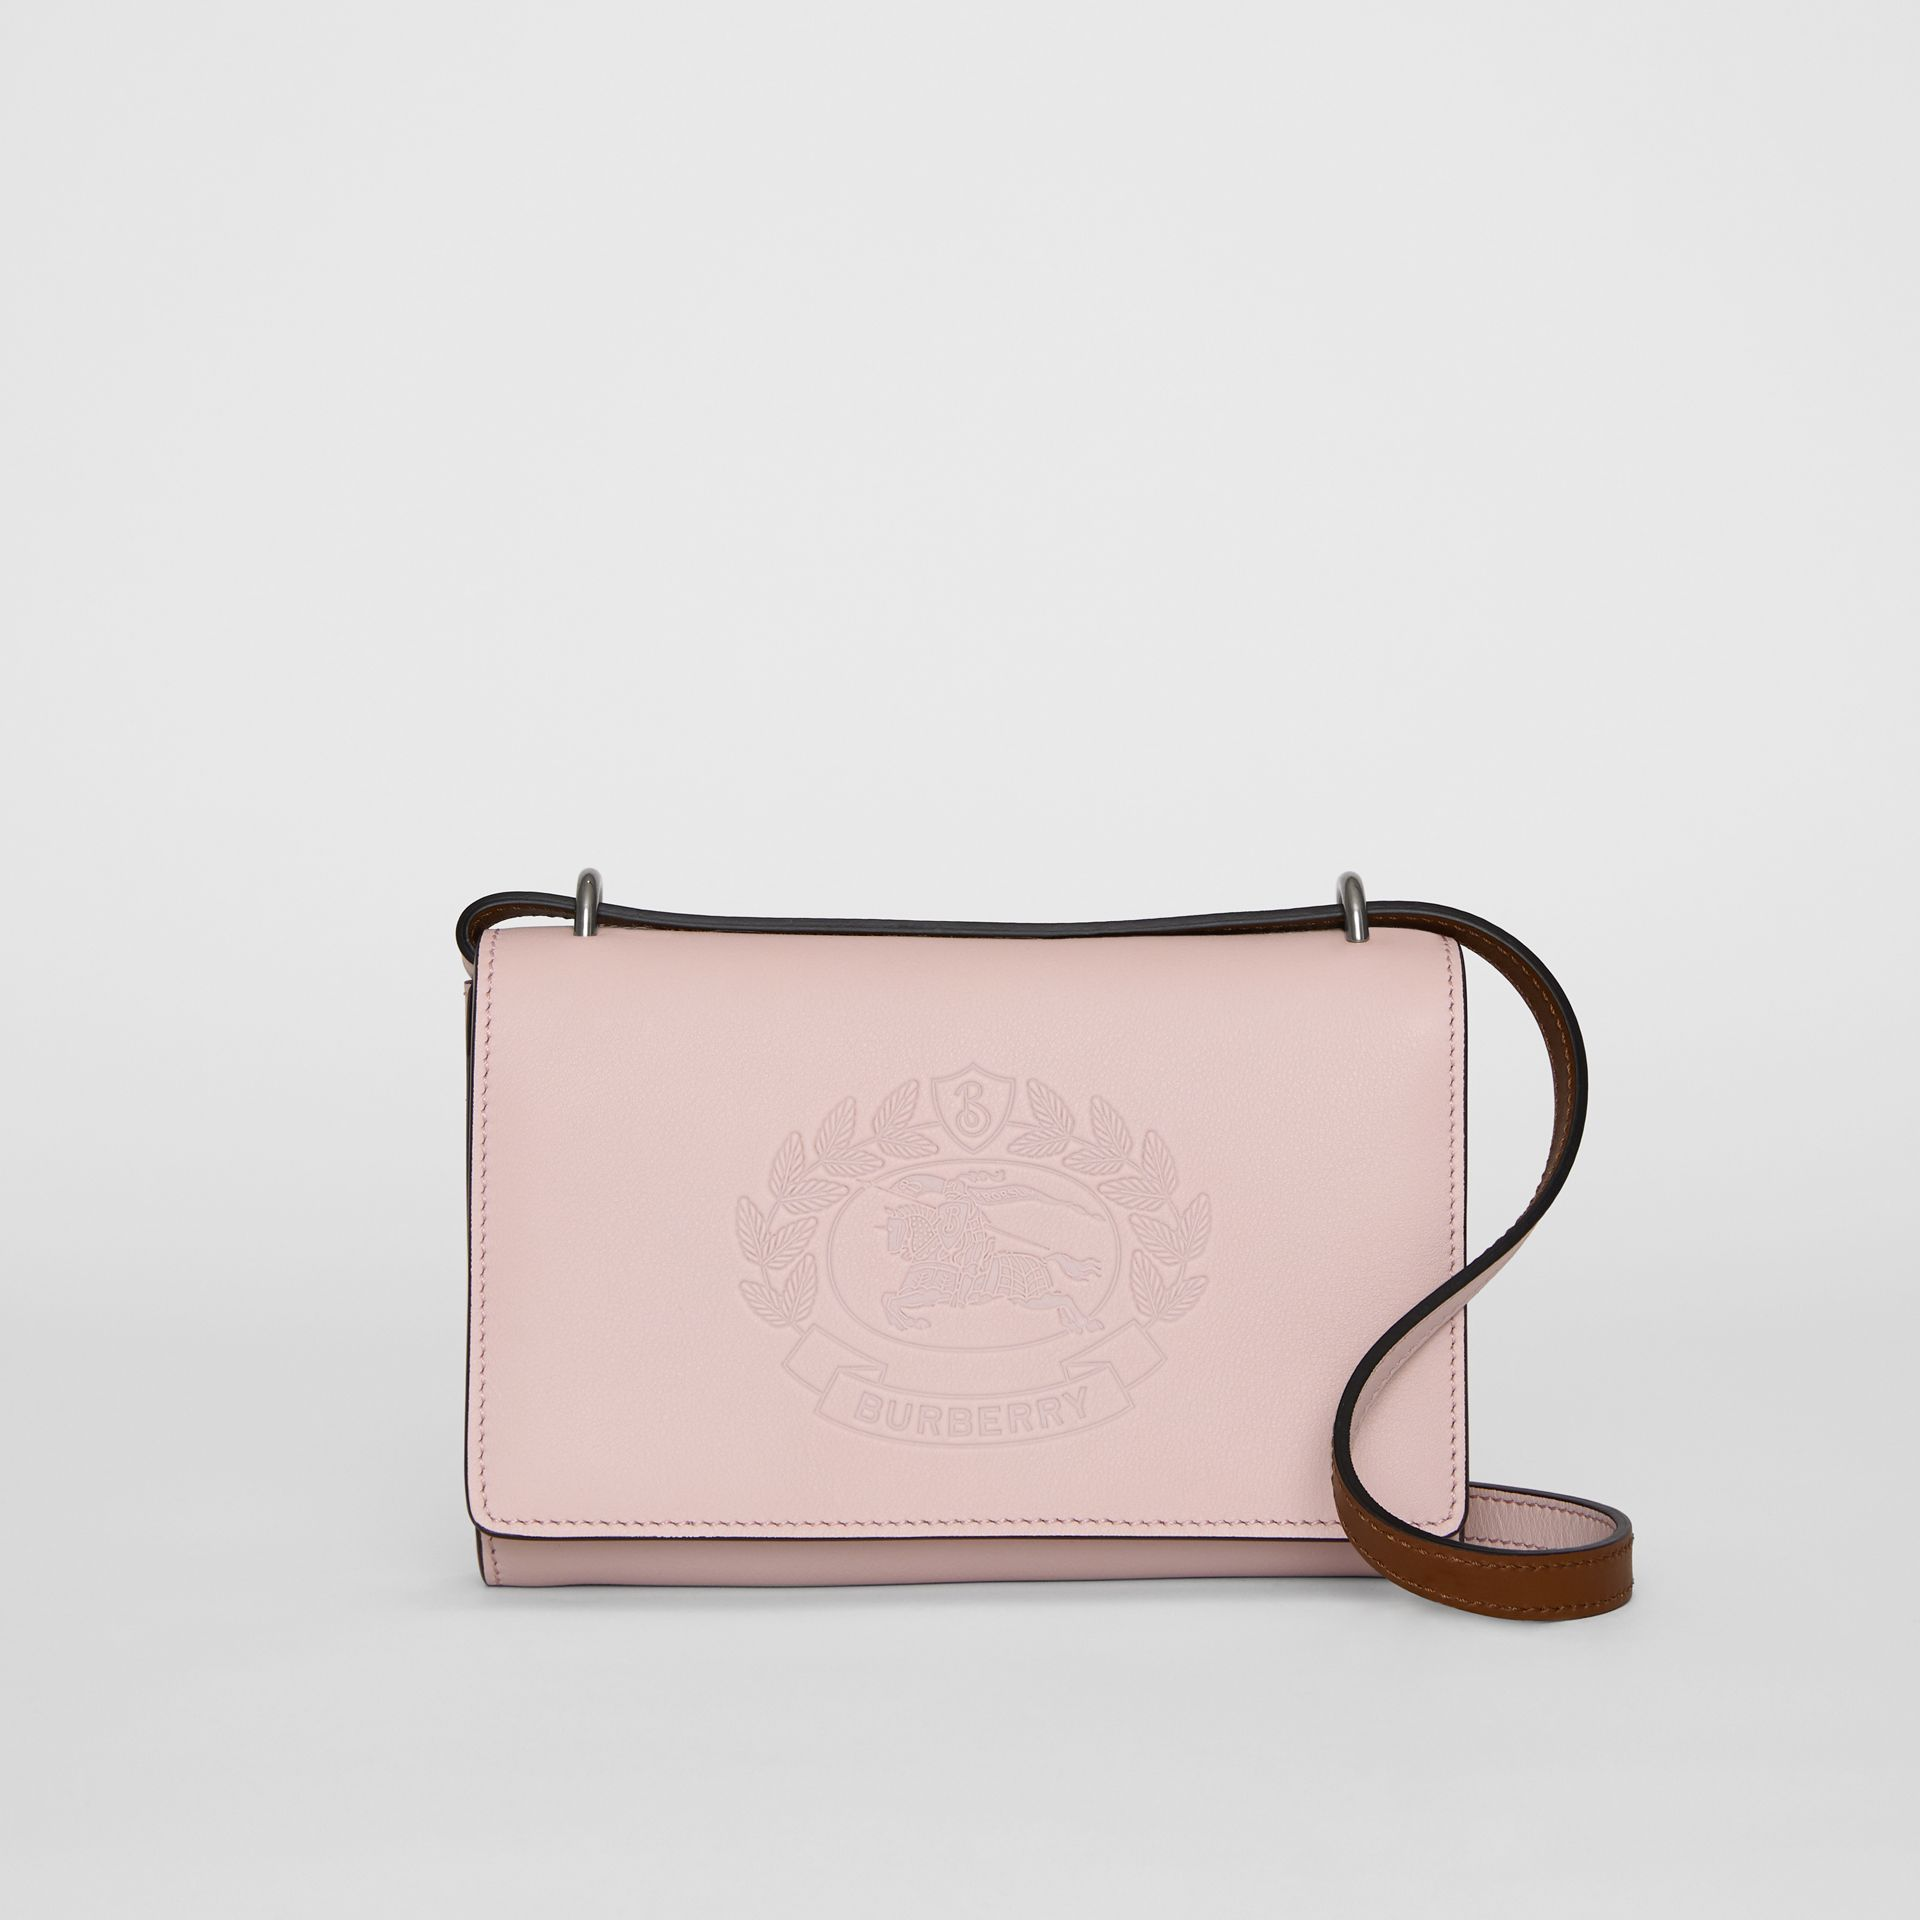 Embossed Crest Leather Wallet with Detachable Strap in Chalk Pink - Women | Burberry - gallery image 0